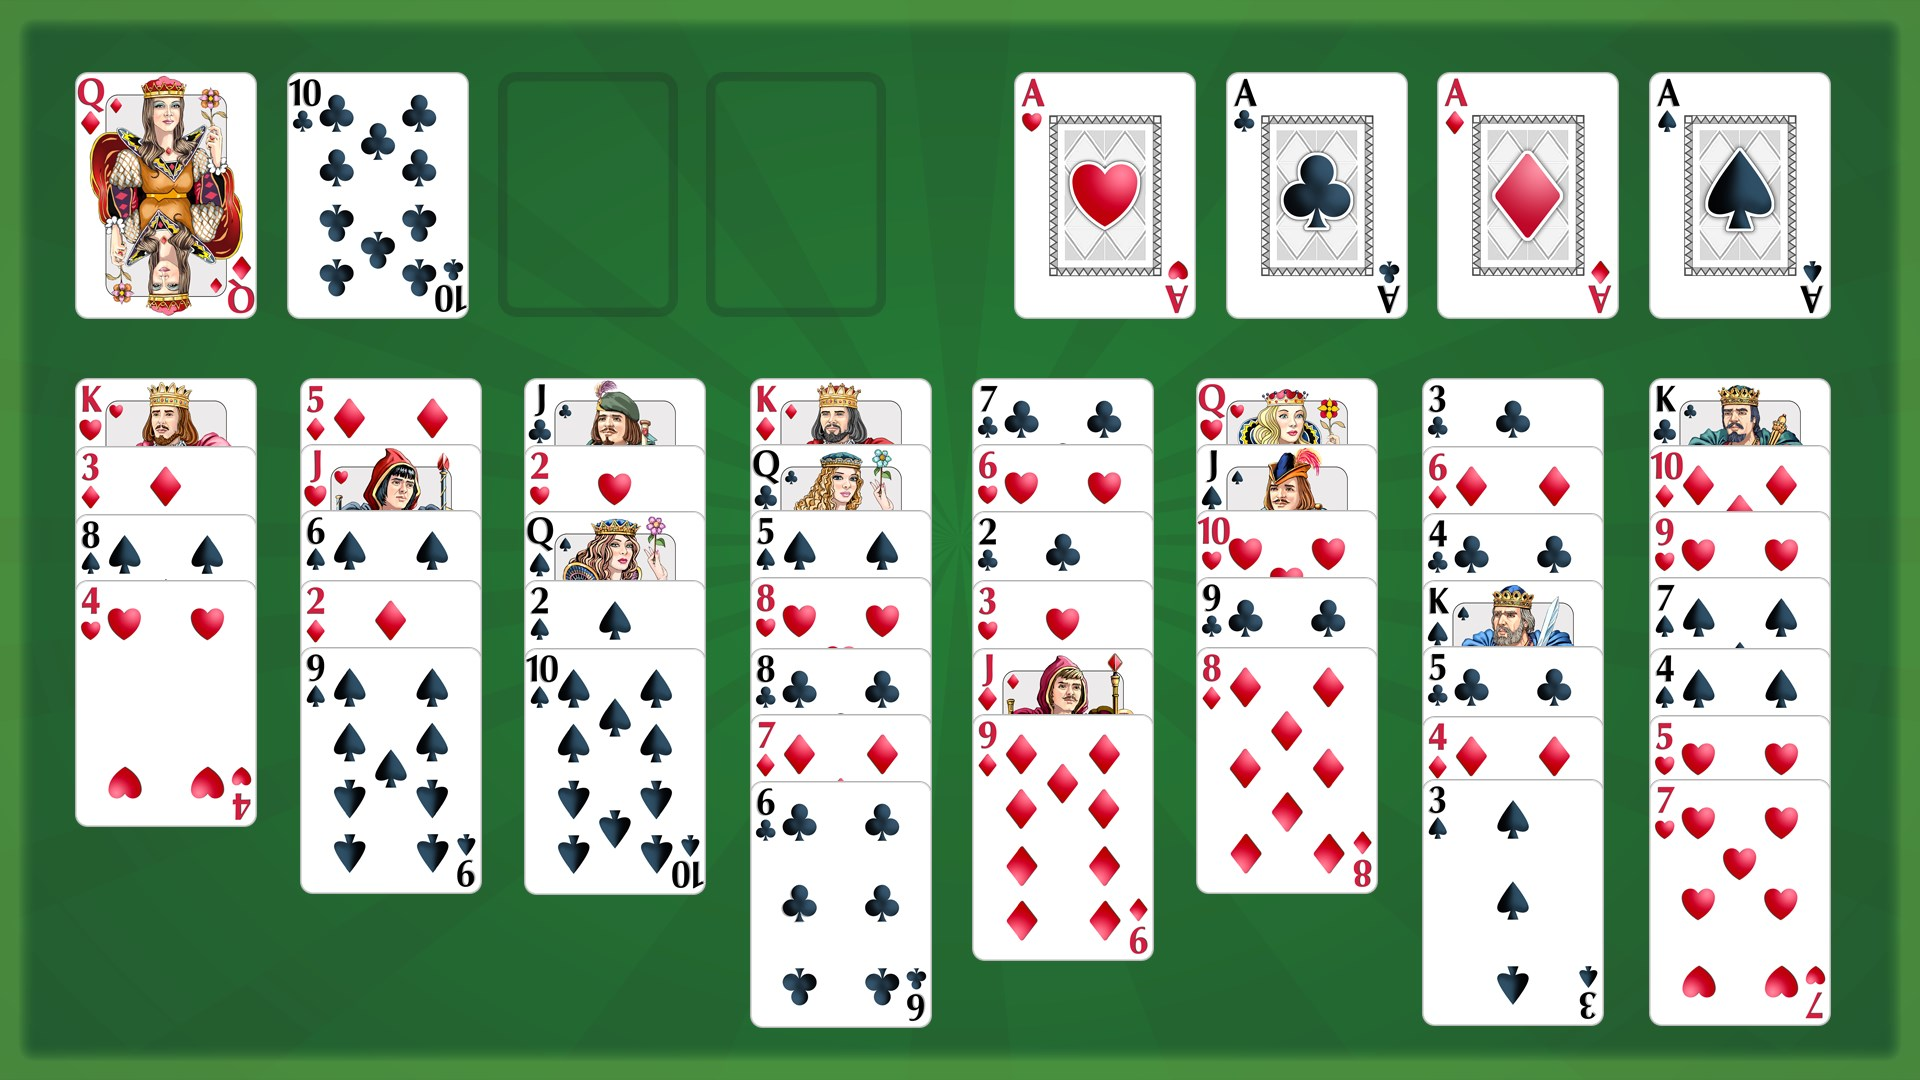 Microsoft solitaire windows 7 free download | Solitaire For